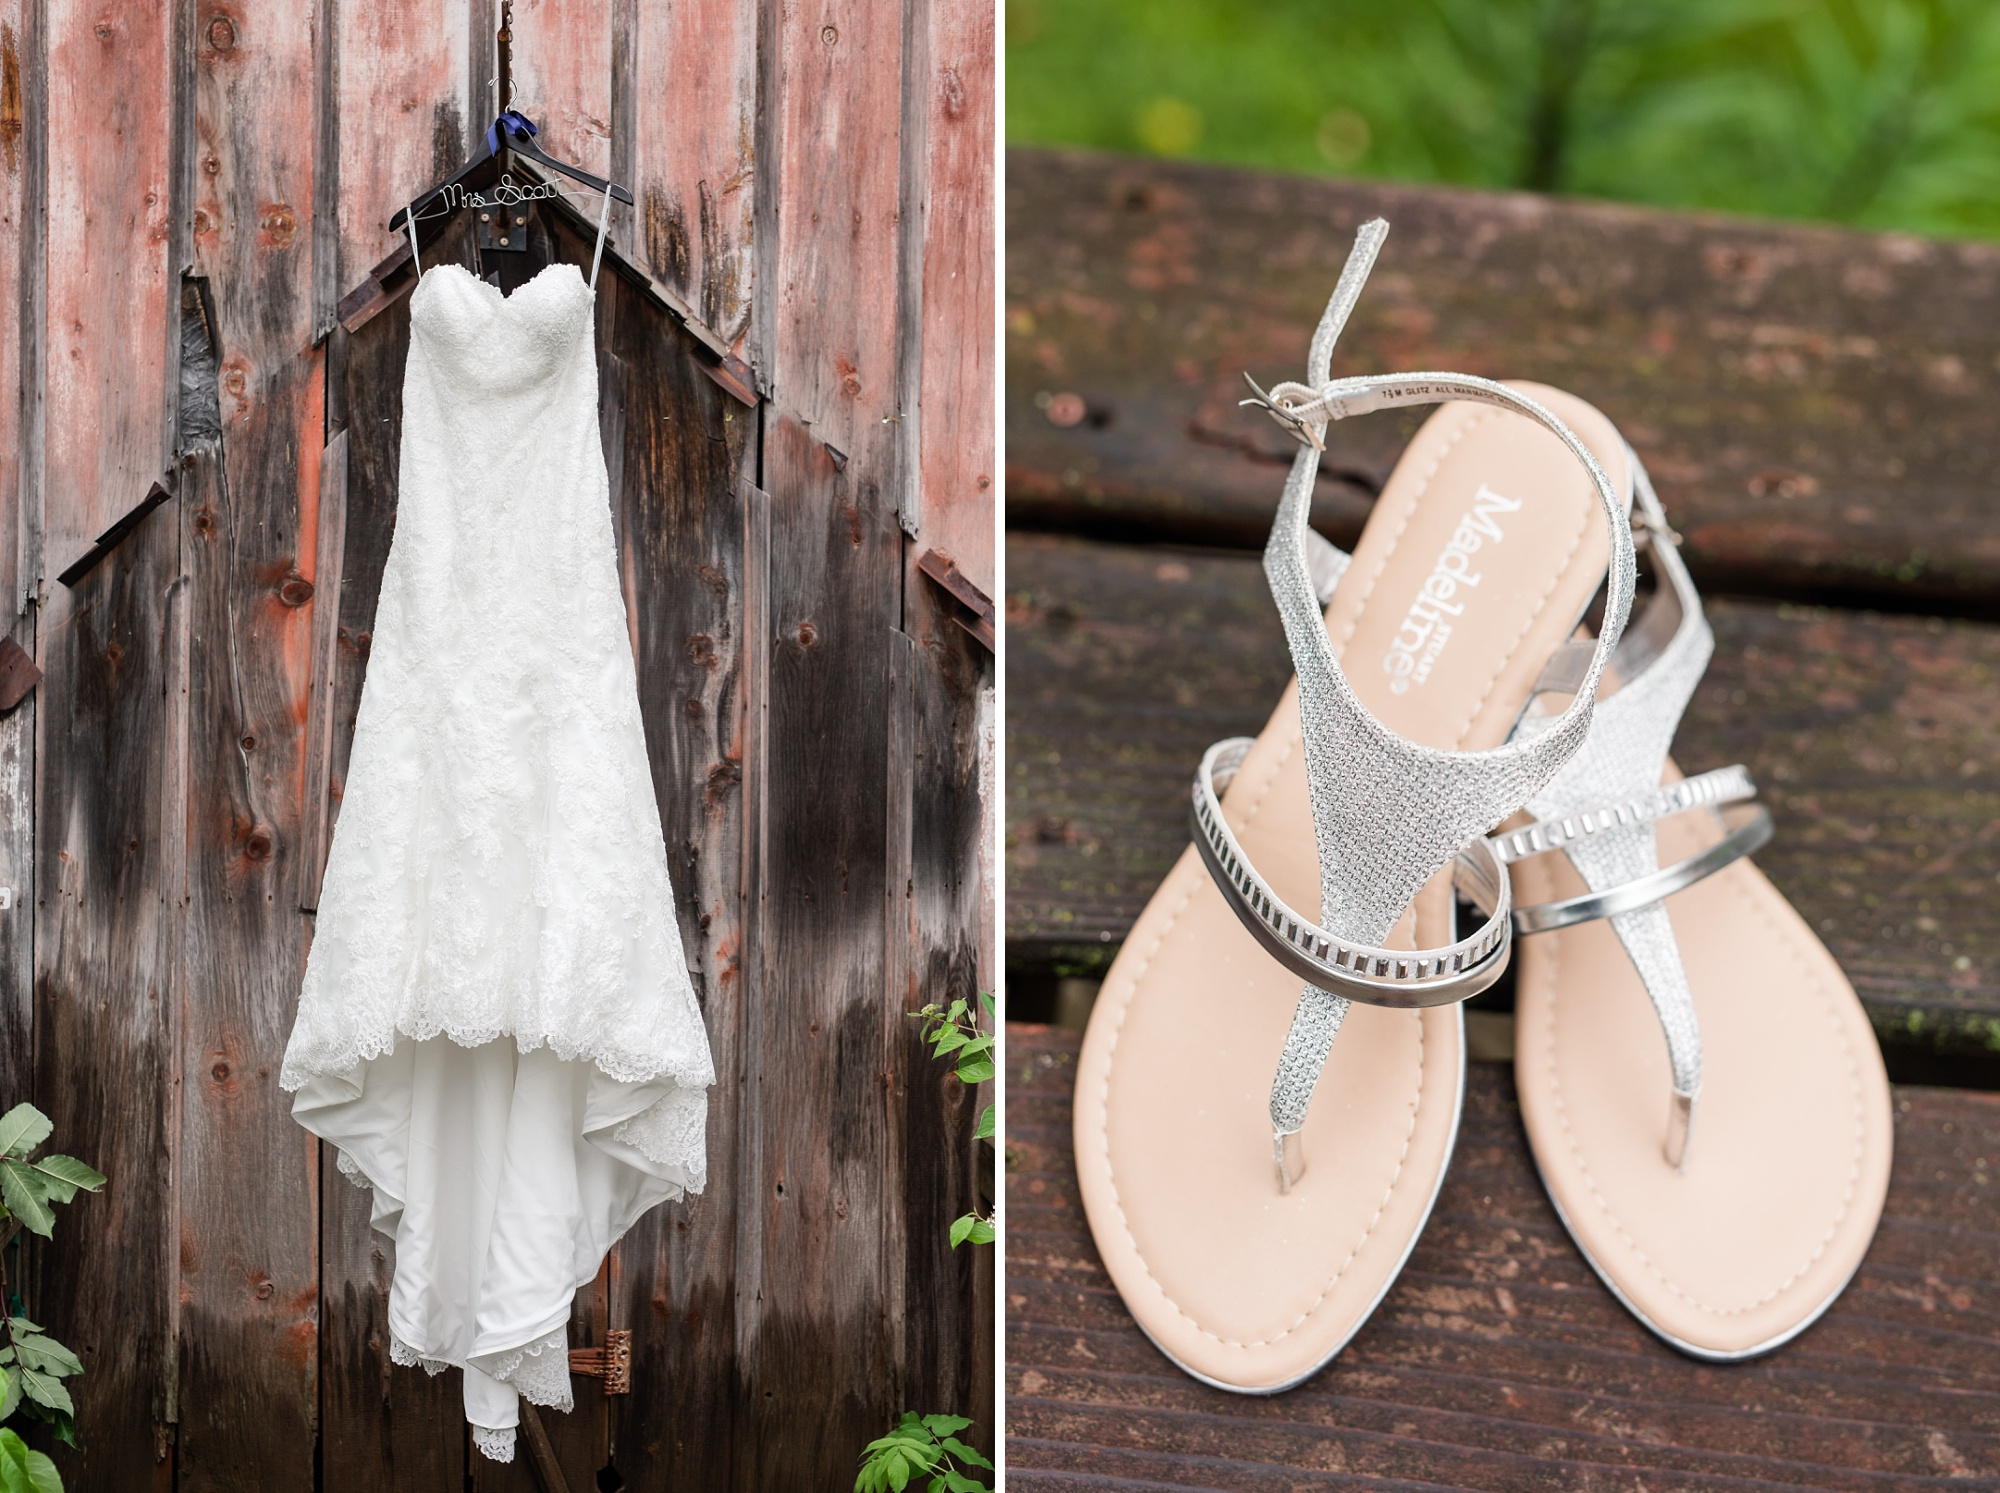 Outdoor Minnesota Barn Wedding at Milt's Barn near Pelican Rapids, MN | Even & Brittany